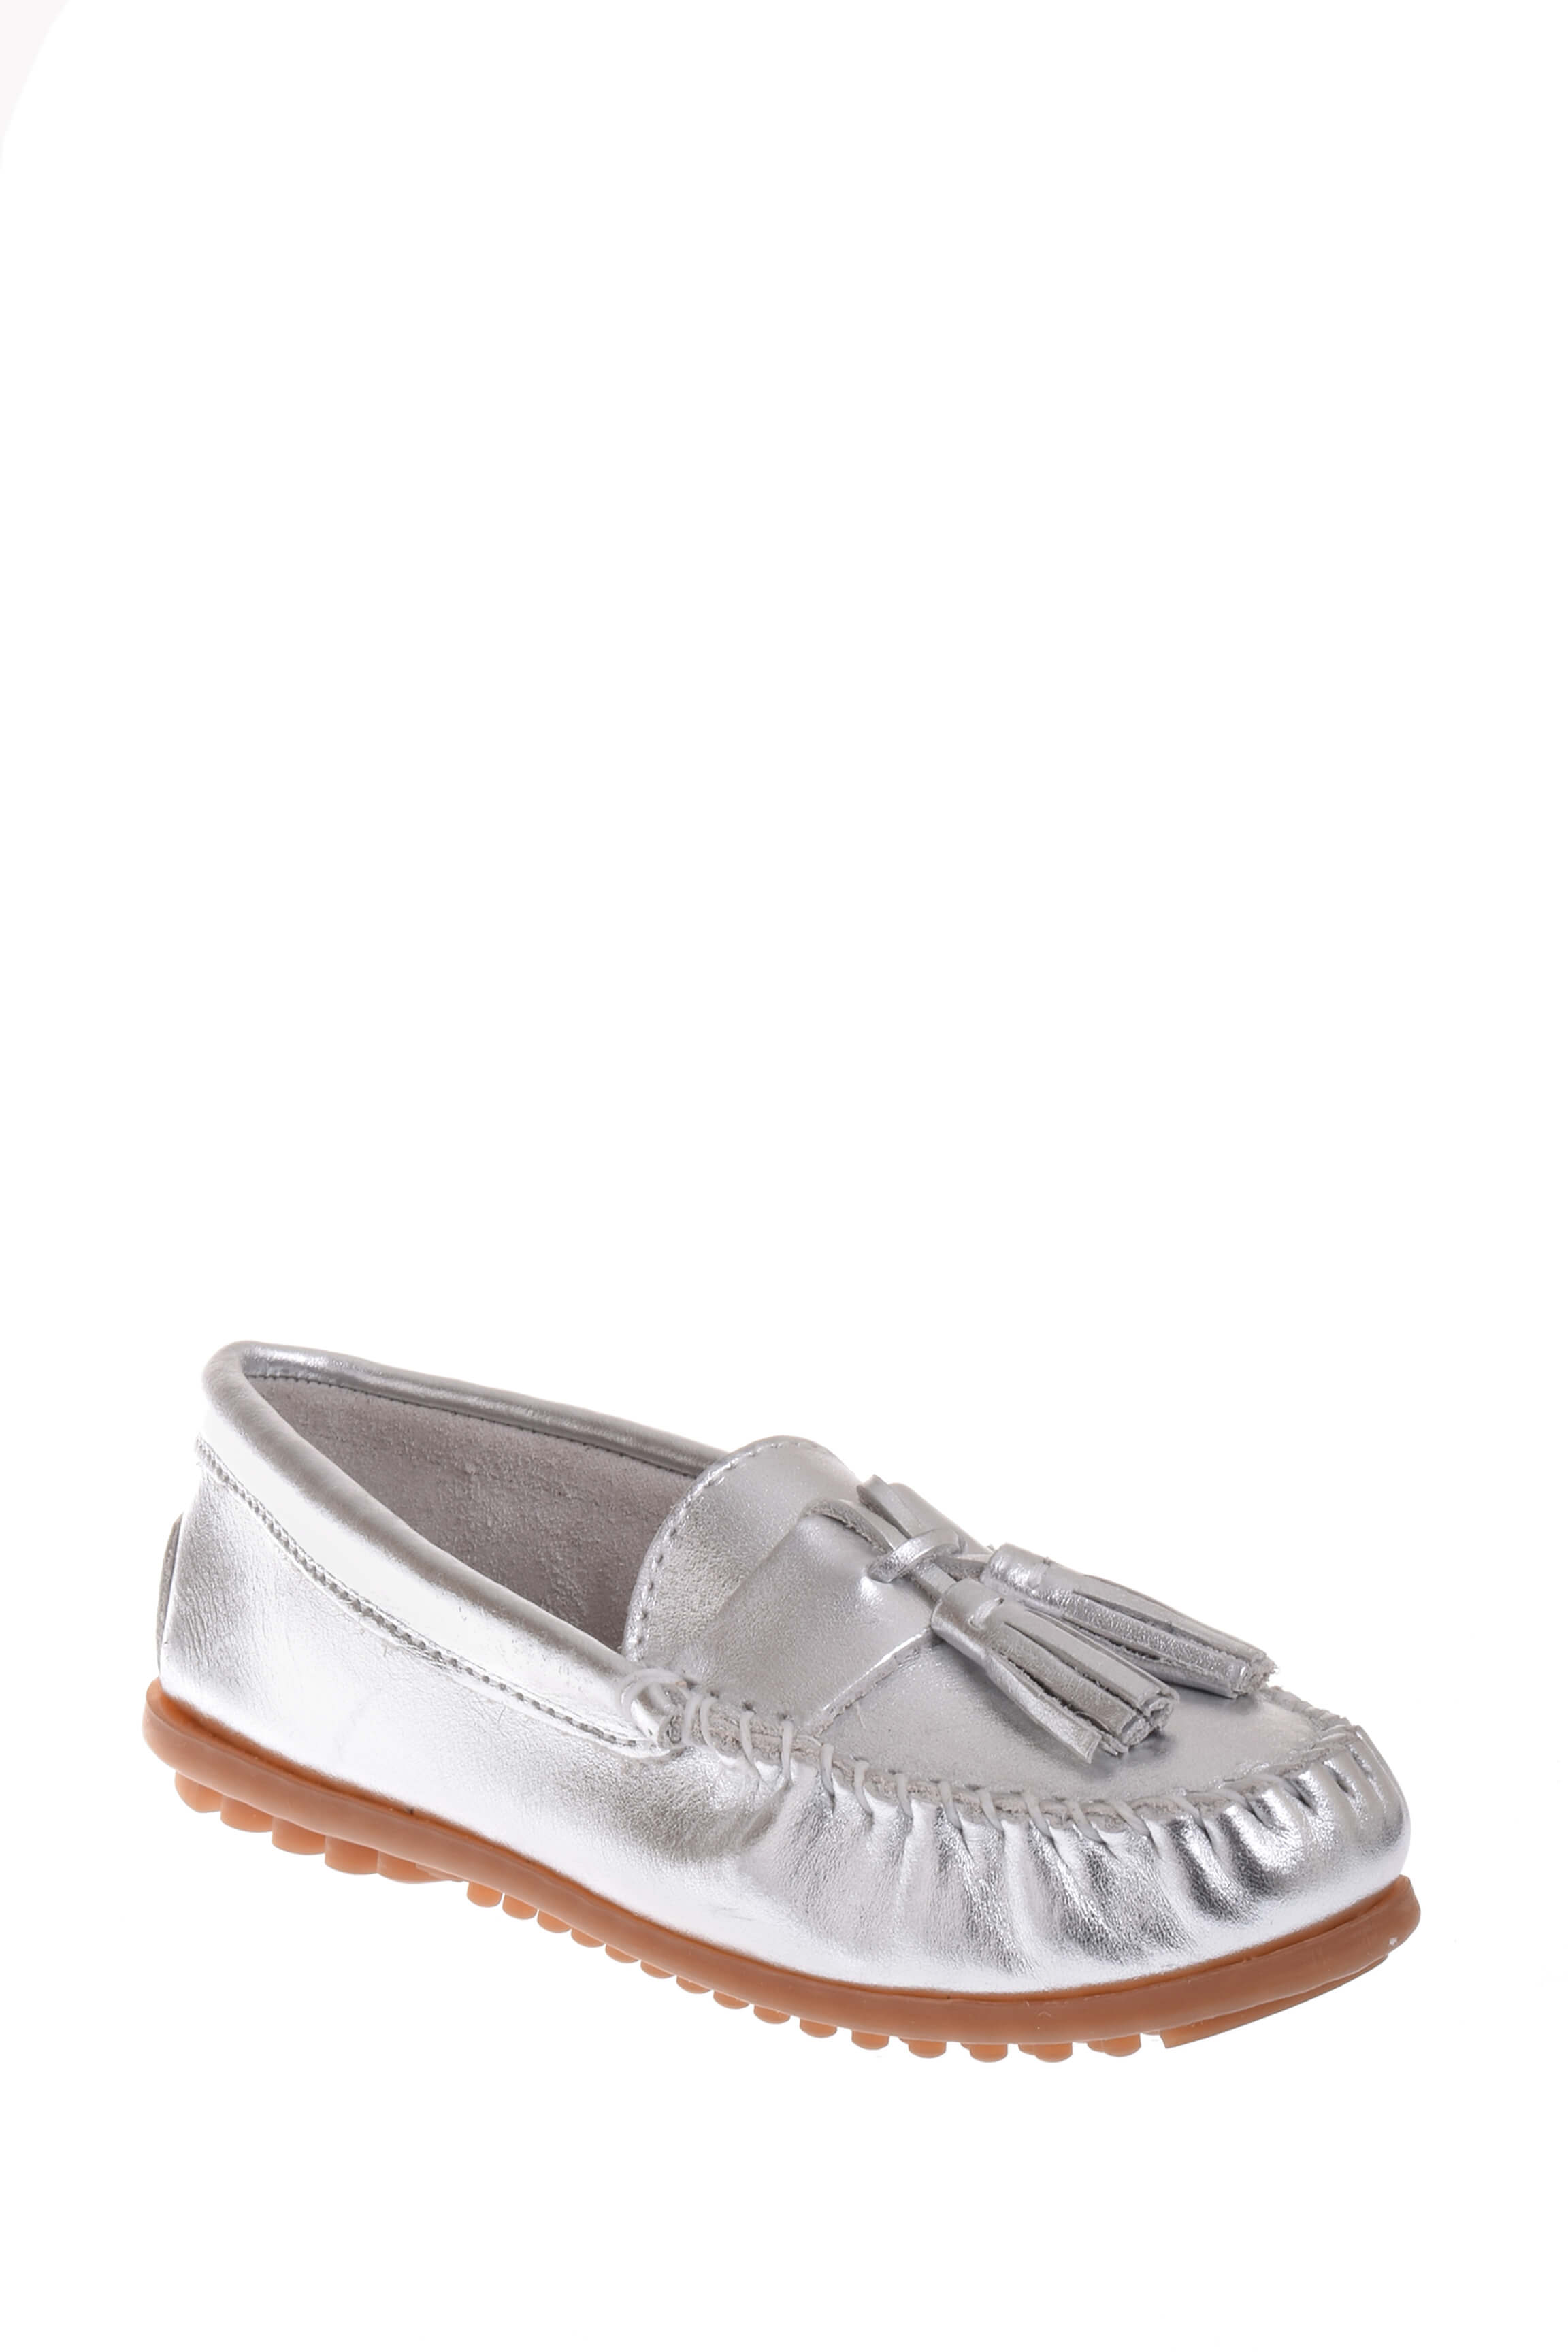 Click here to buy Minnetonka 411T Grace Moc Loafer Silver.